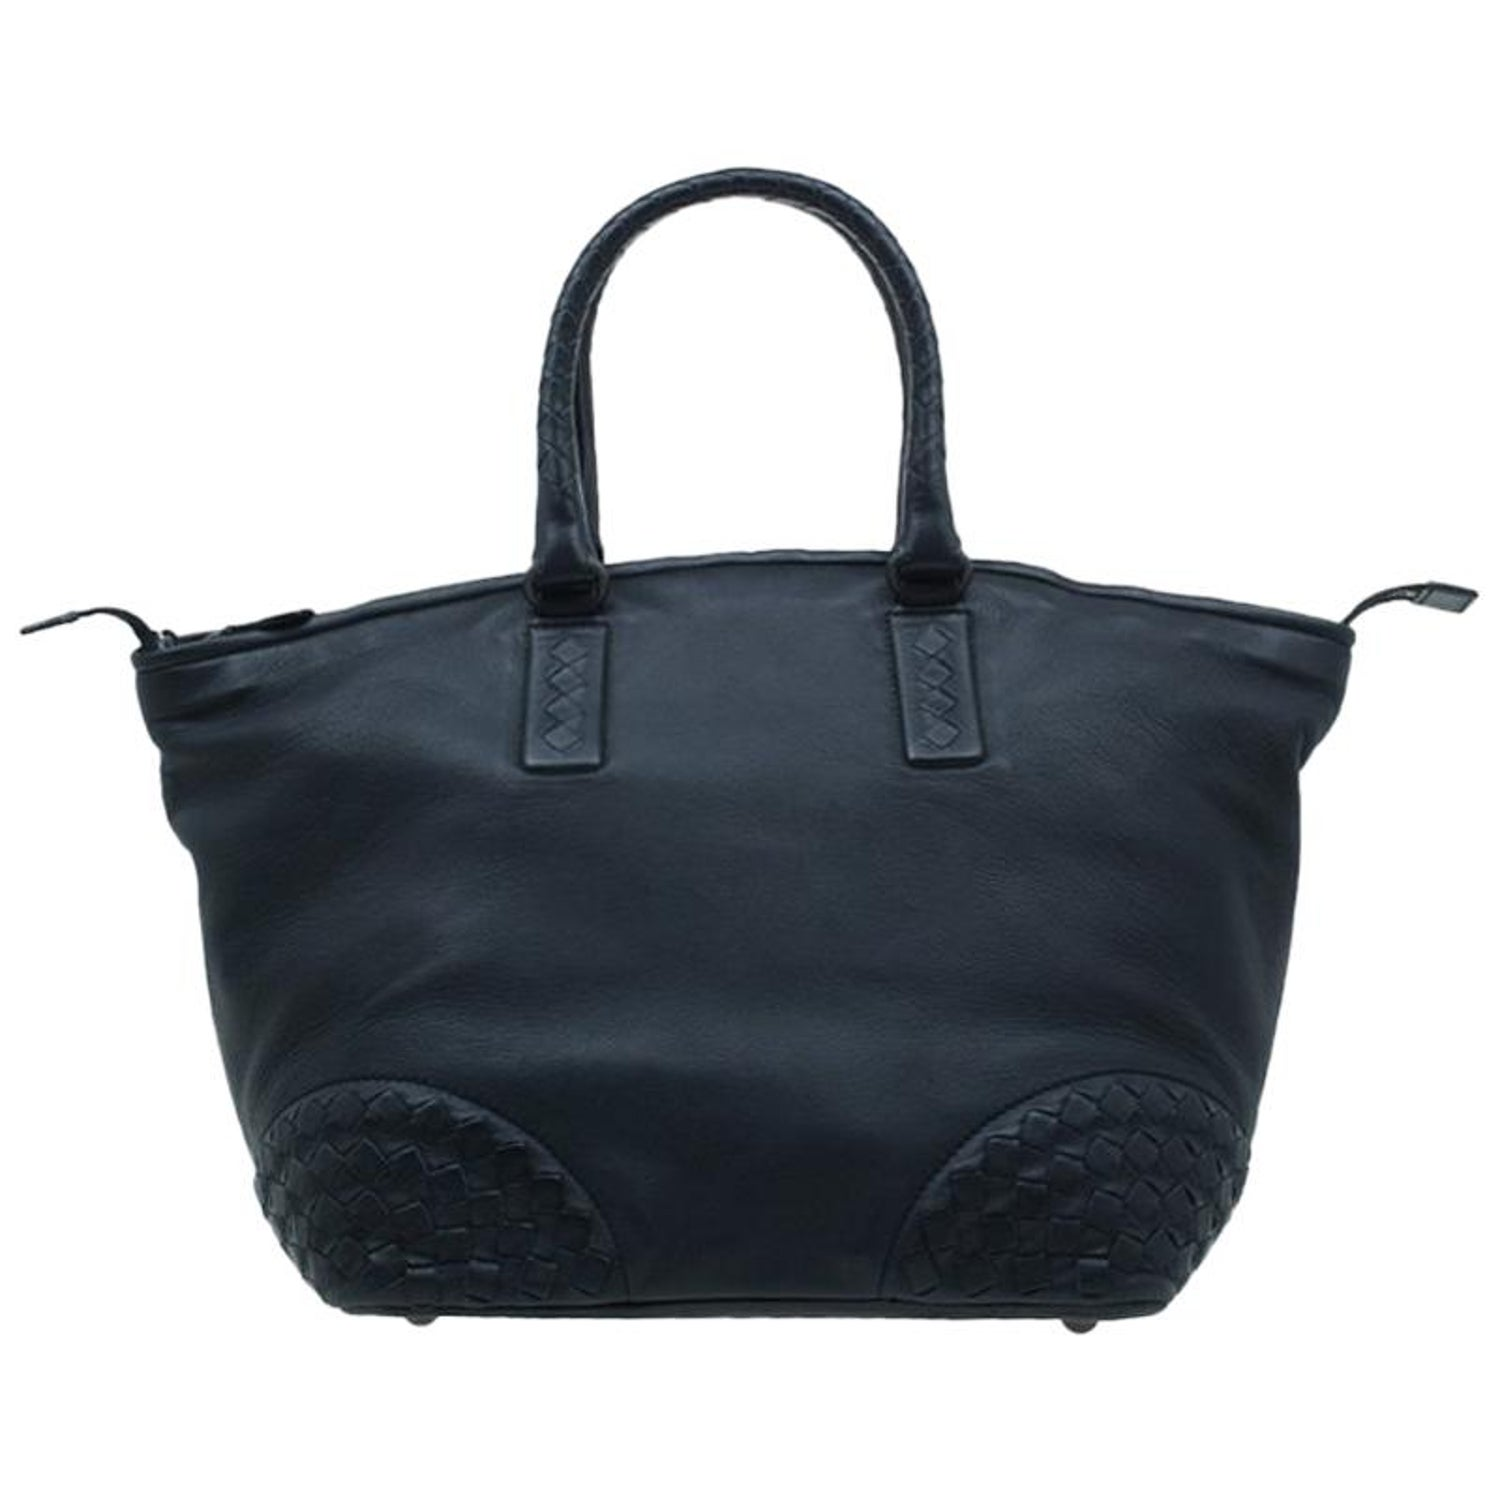 Bottega Veneta Black Nappa Intrecciato Leather Small Tote Bag For Sale at  1stdibs 4e04340171ac0